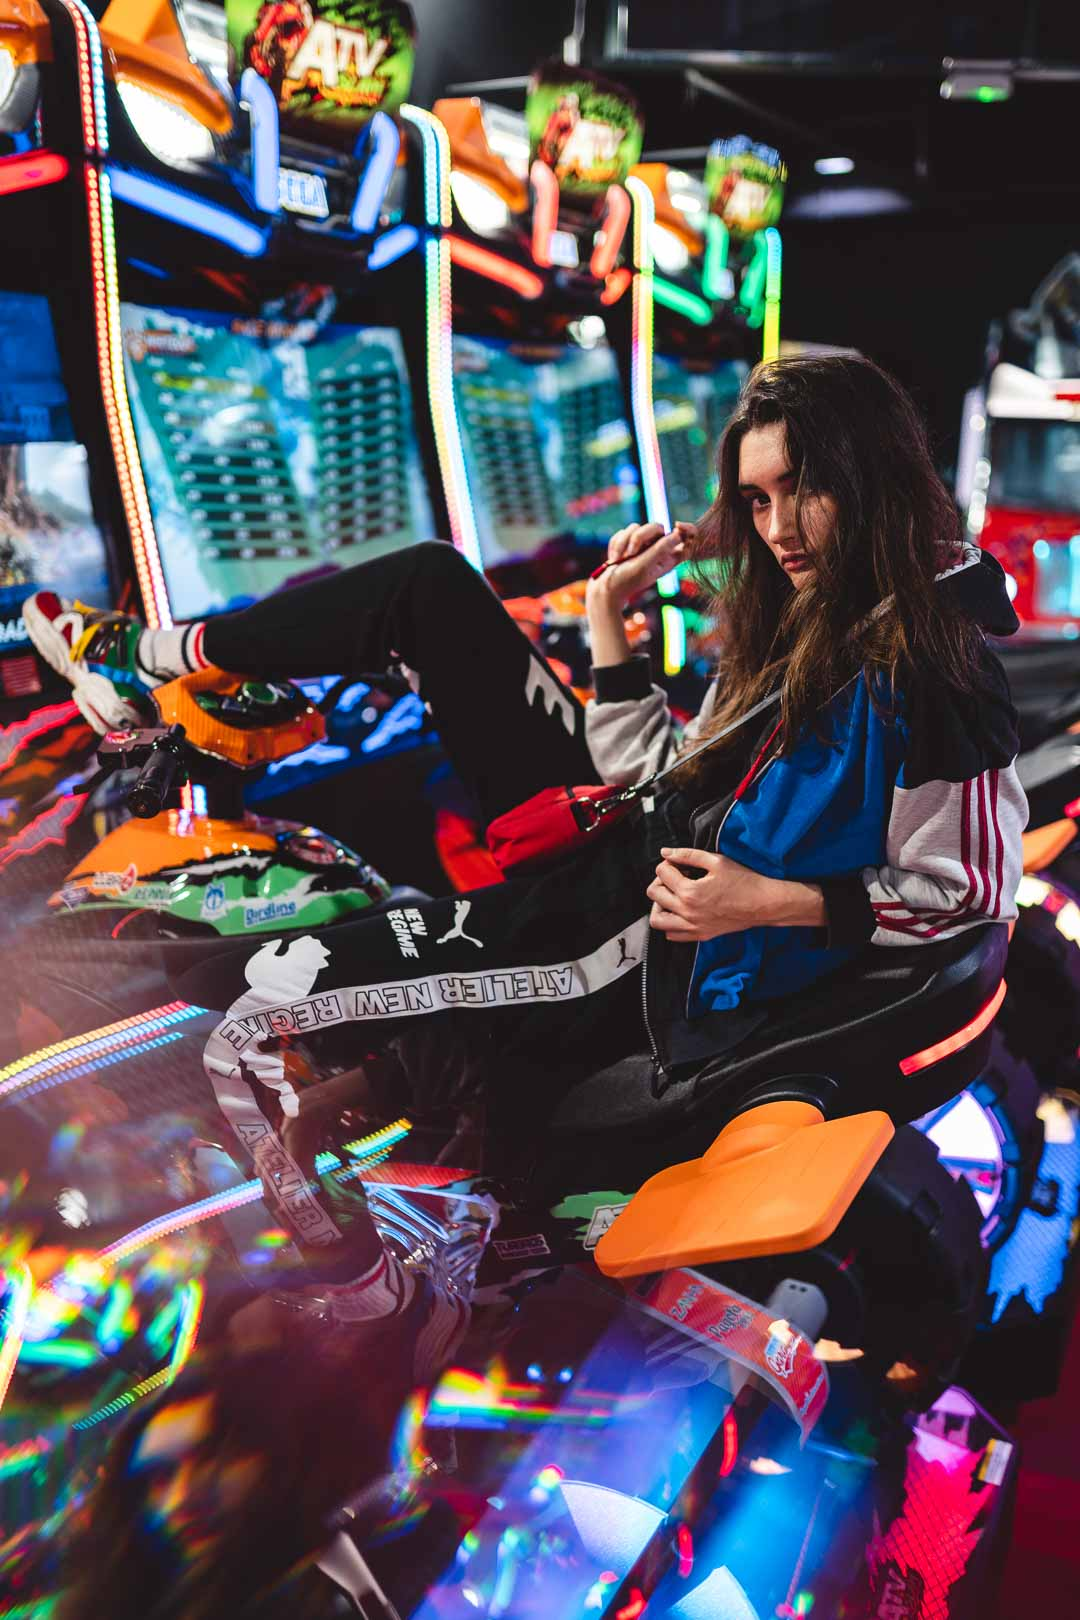 Young woman in jogging sitting on a retro gaming machine in an arcade